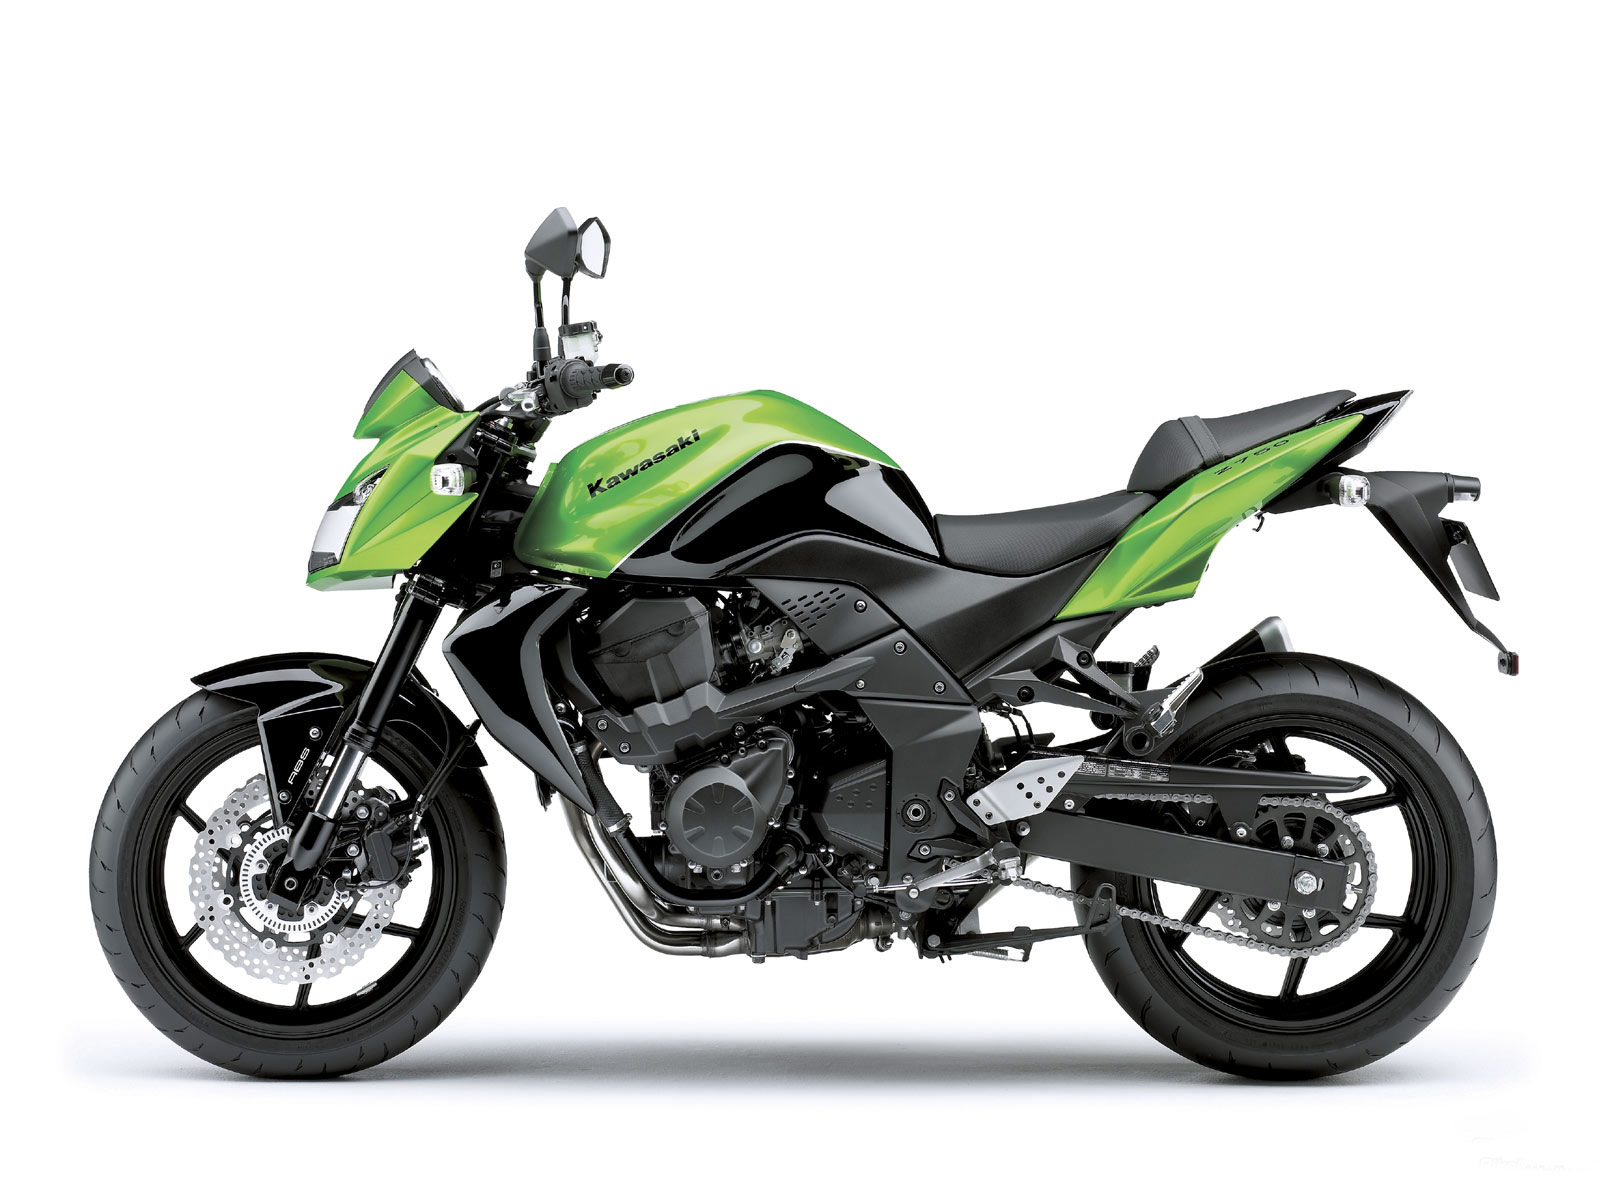 2009 kawasaki z750 accident lawyers wallpapers specs. Black Bedroom Furniture Sets. Home Design Ideas